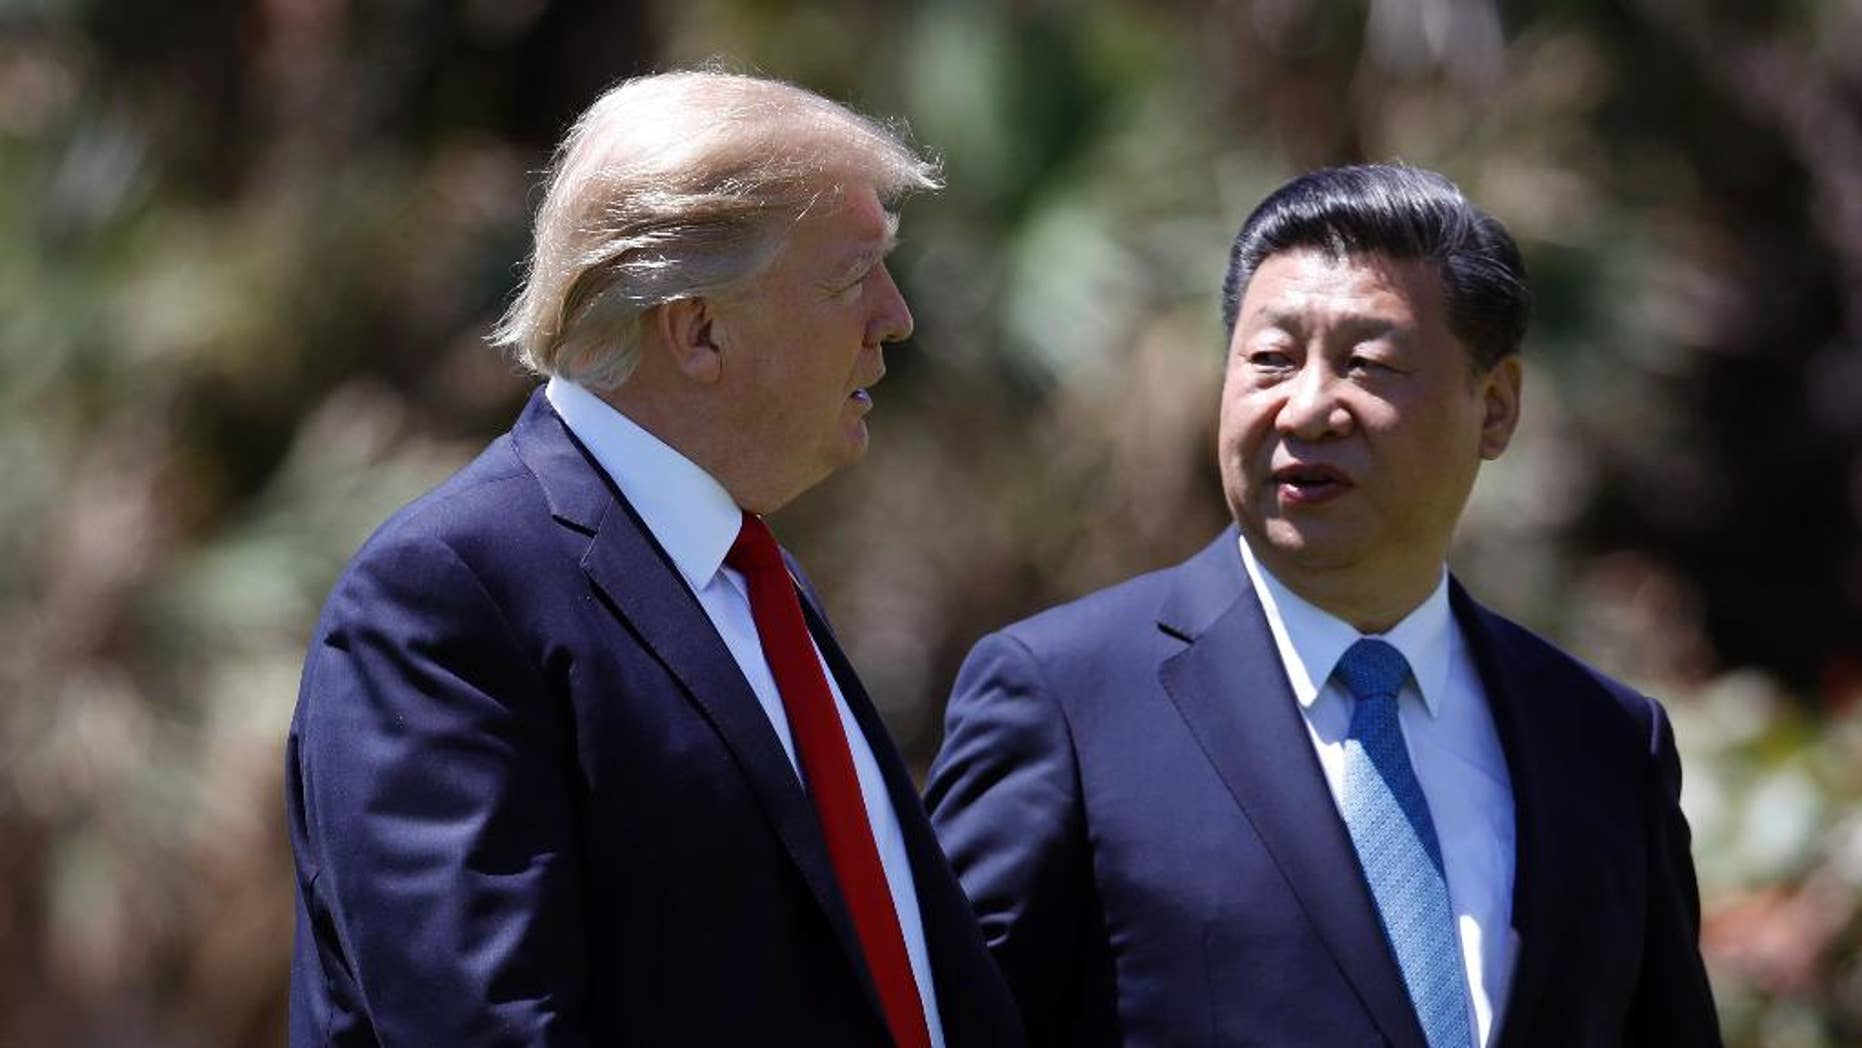 "FILE - In this April 7, 2017 file photo, President Donald Trump, left, and Chinese President Xi Jinping walk together after their meetings at Mar-a-Lago, in Palm Beach, Fla. Trump has praised Xi since hosting him at his Palm Beach, Fla., resort, after sharply criticizing China's economic policies as a candidate. Since taking office, Trump has displayed a striking willingness to embrace autocrats as potential partners in his ""America First"" agenda, even if it means ignoring their heavy-handed tactics and repression at home. (AP Photo/Alex Brandon, File)"